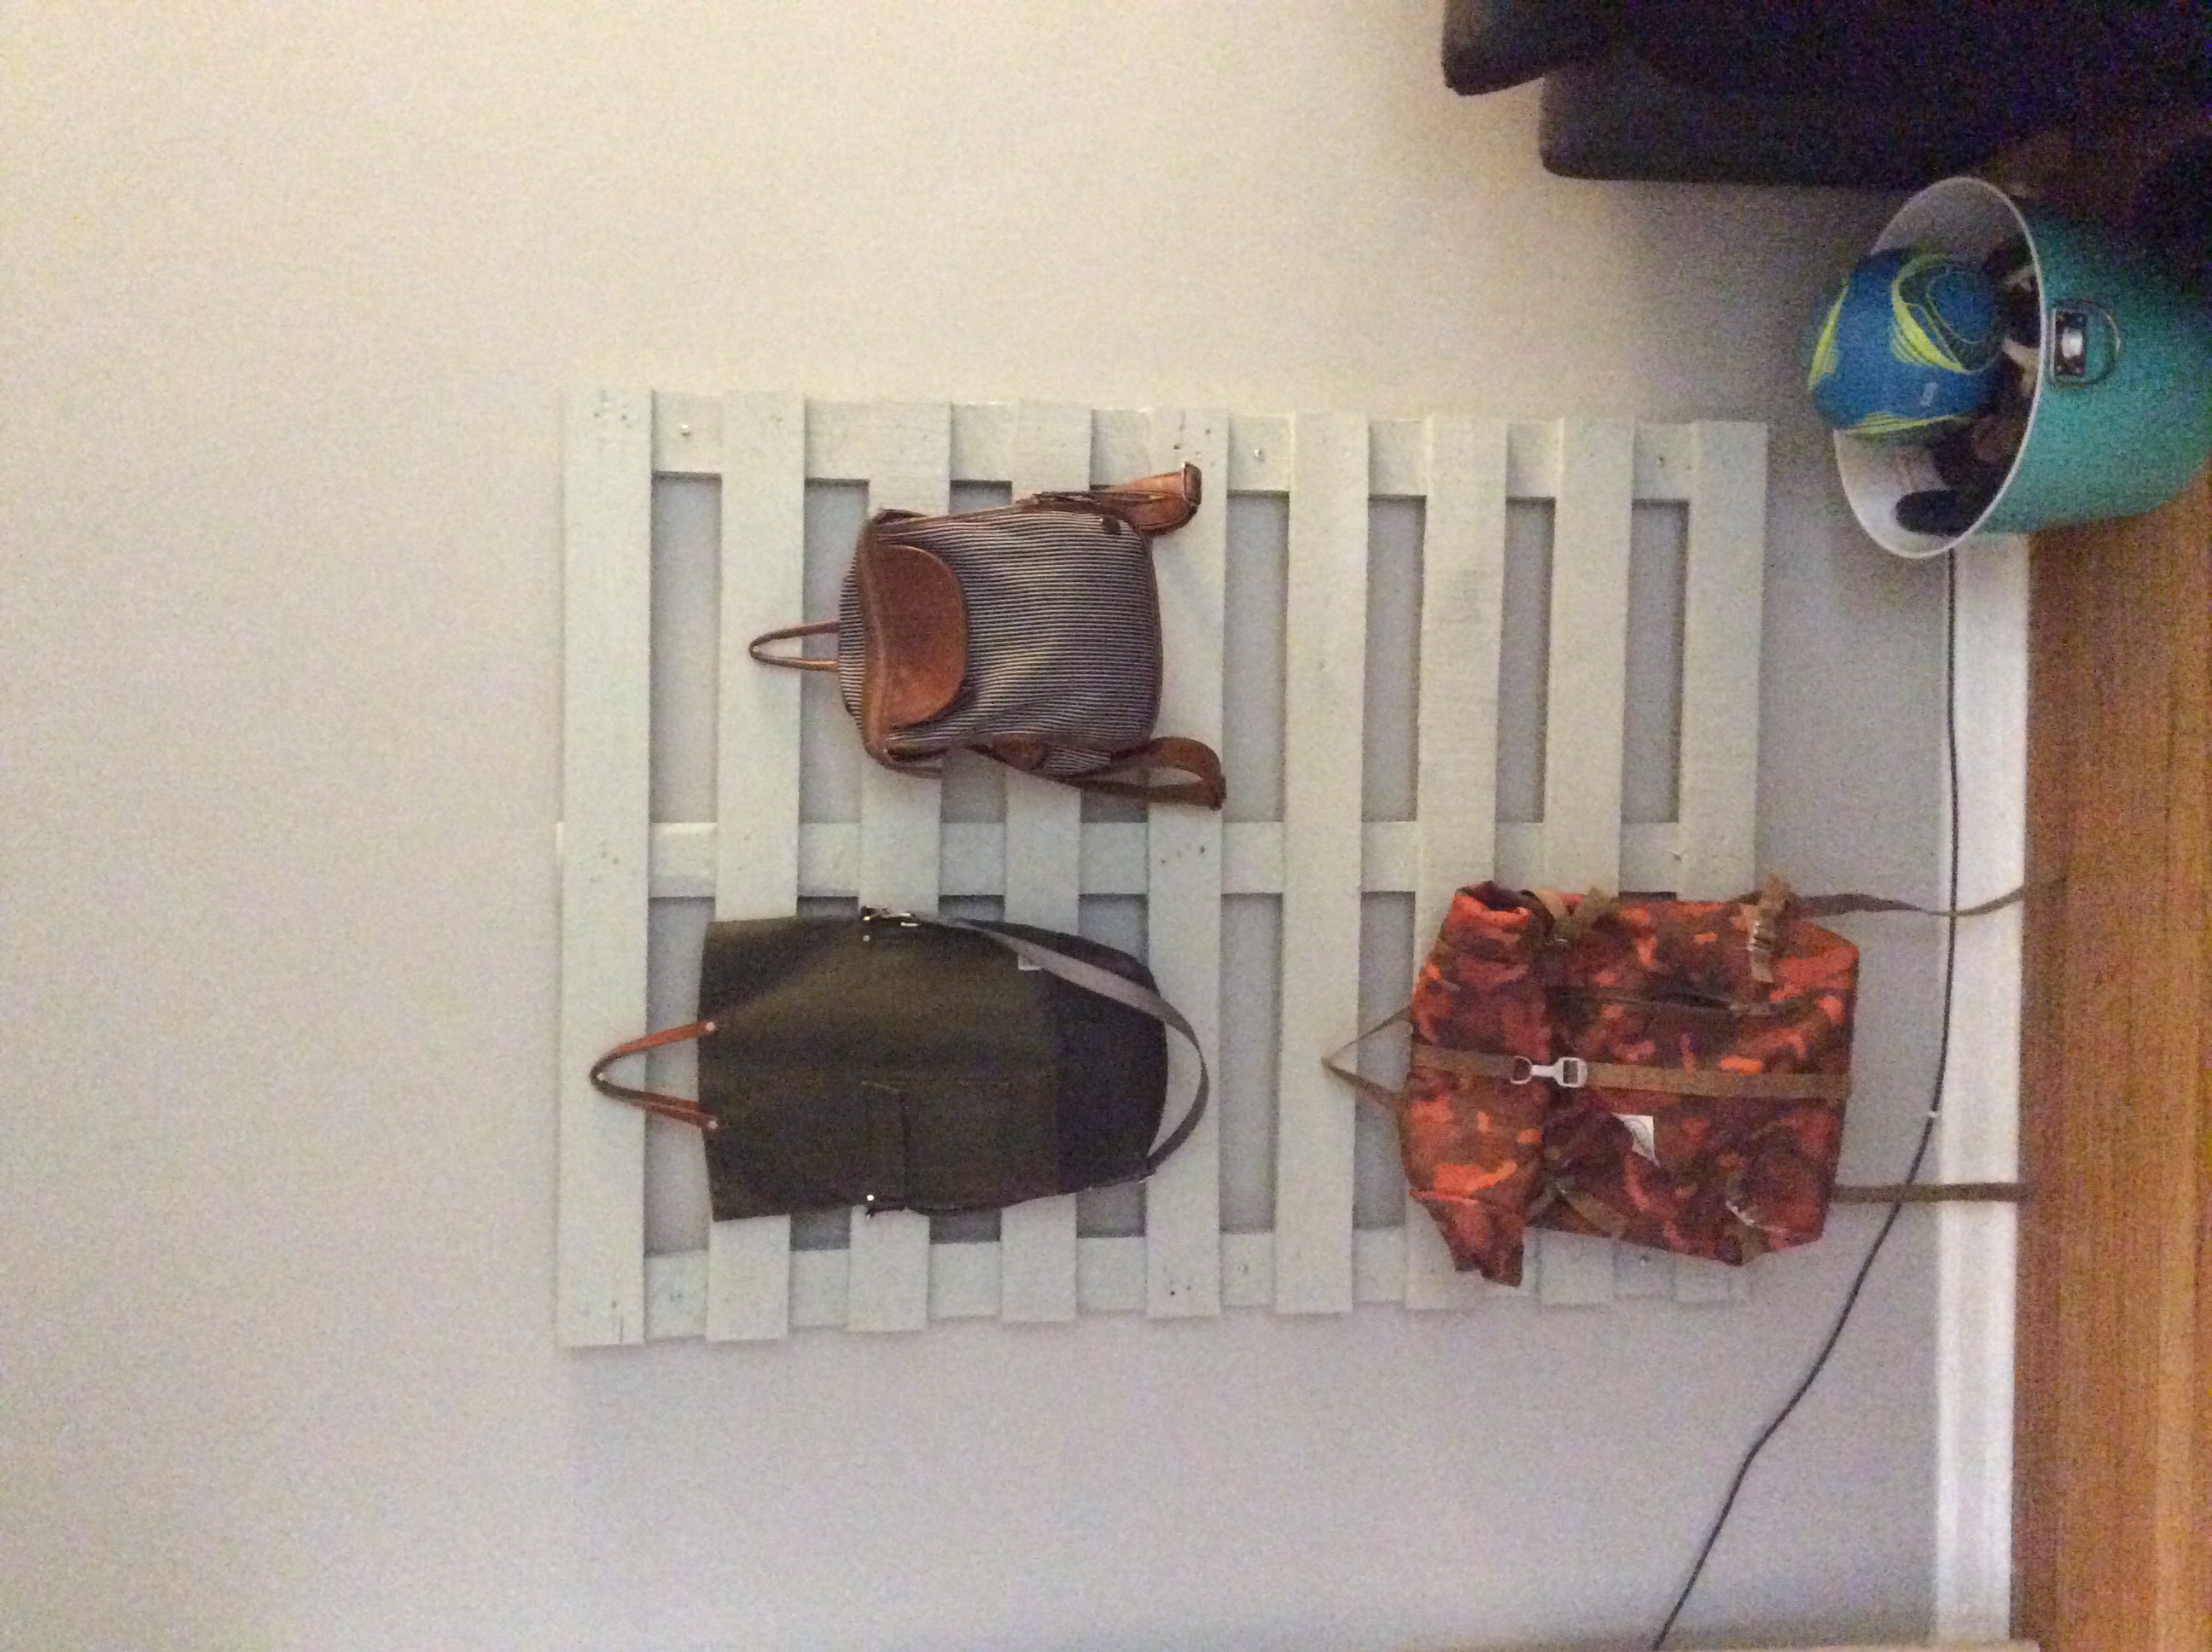 Wall hanging pallet